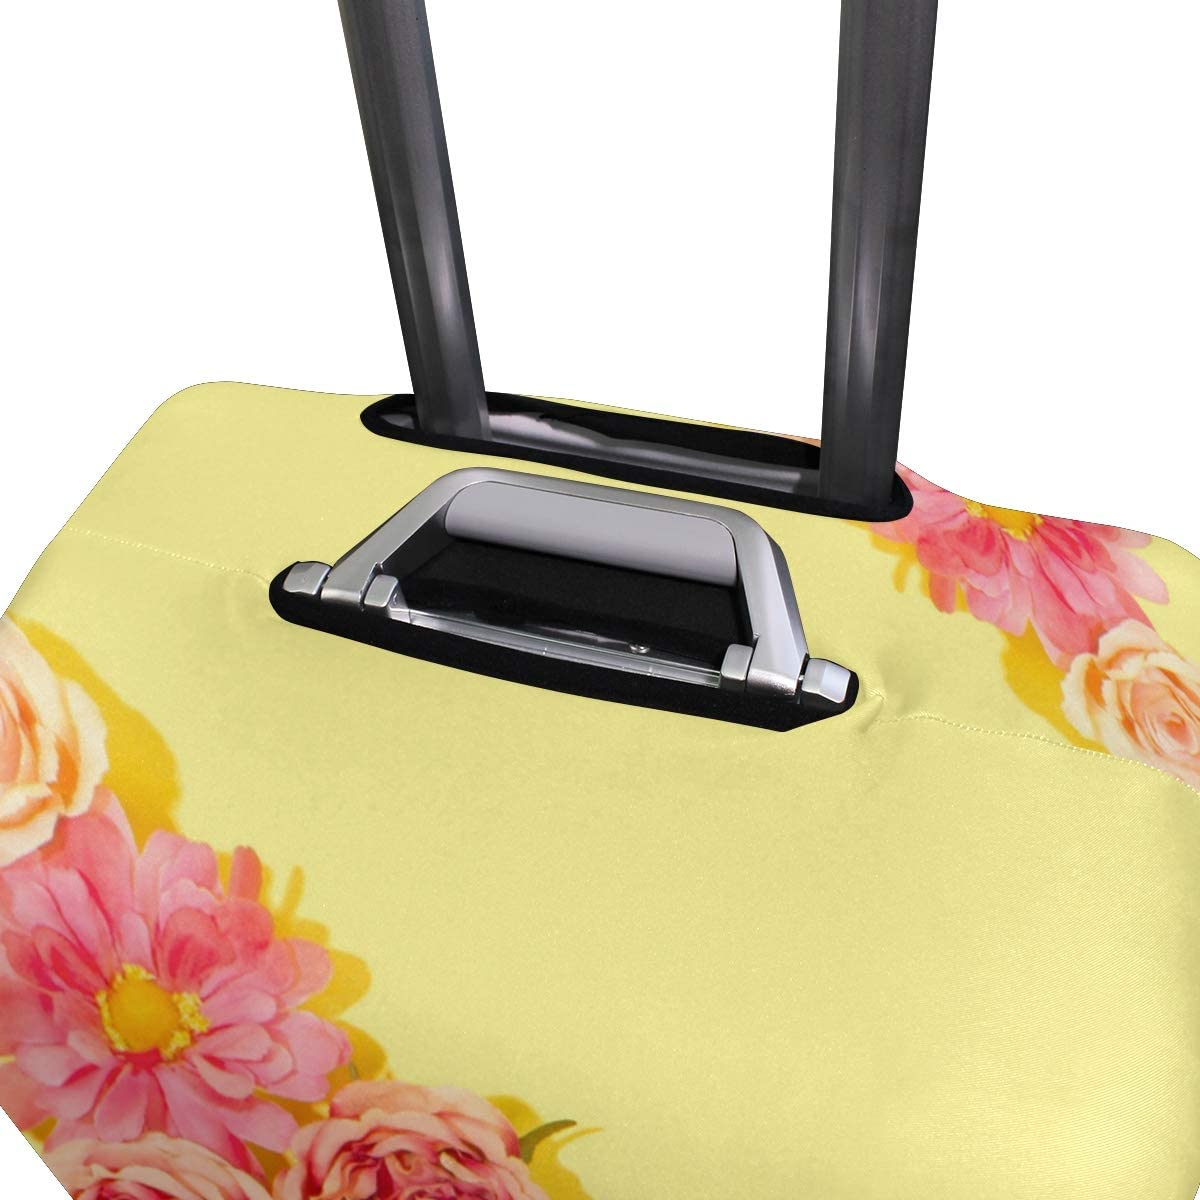 Travel Luggage Cover Flowers Prismatic Suitcase Protector Fits 18-20 Inch Washable Baggage Covers